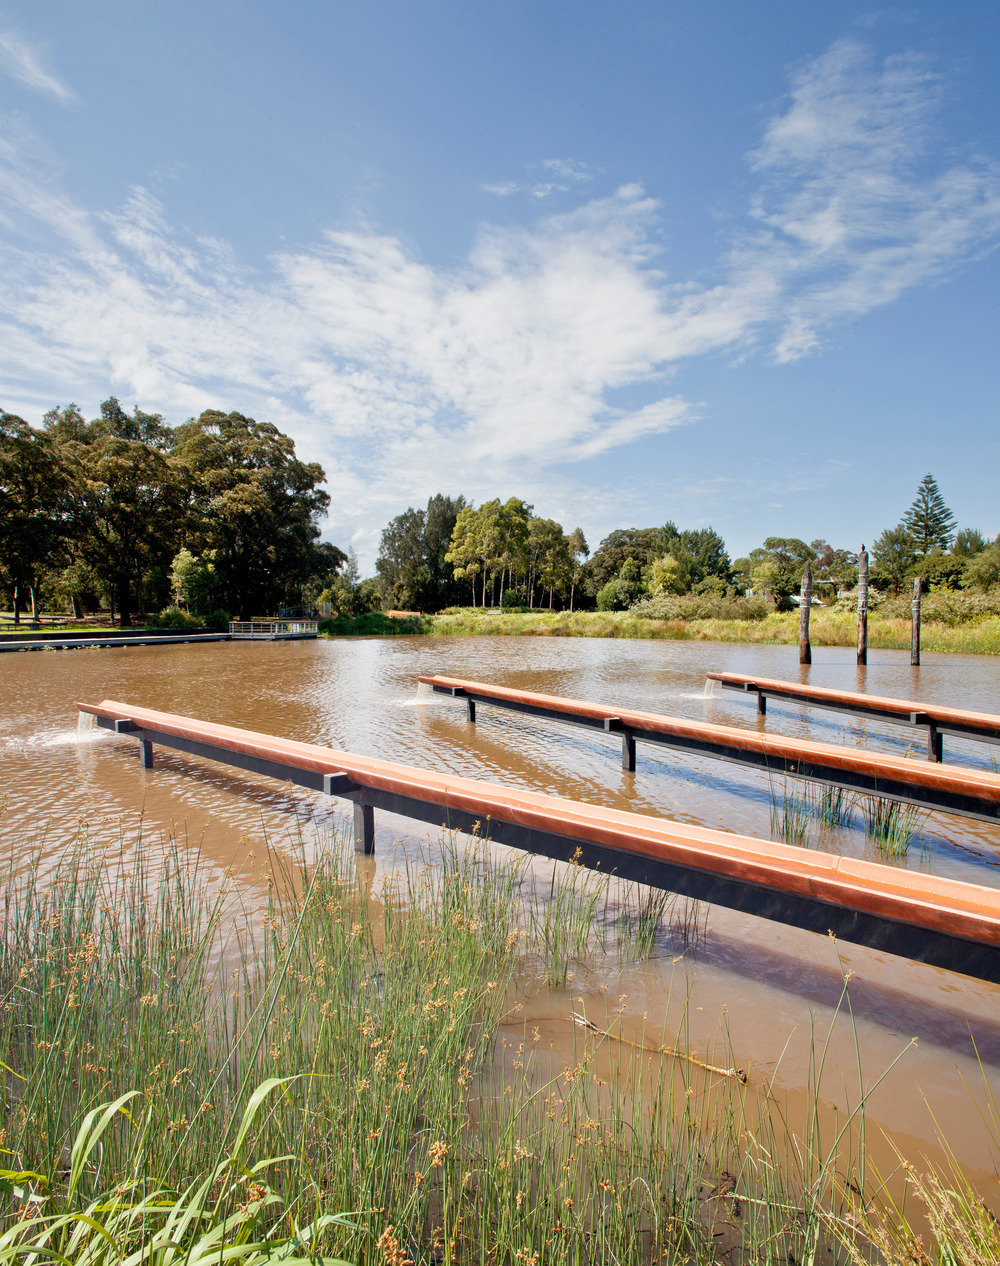 Turf Design Studio & Environmental Partnership with Alluvium, Turpin + Crawford Studio, Dragonfly Environmental and Partridge – Sydney Park Water Re-use Project Foto: Ethan Rohloff